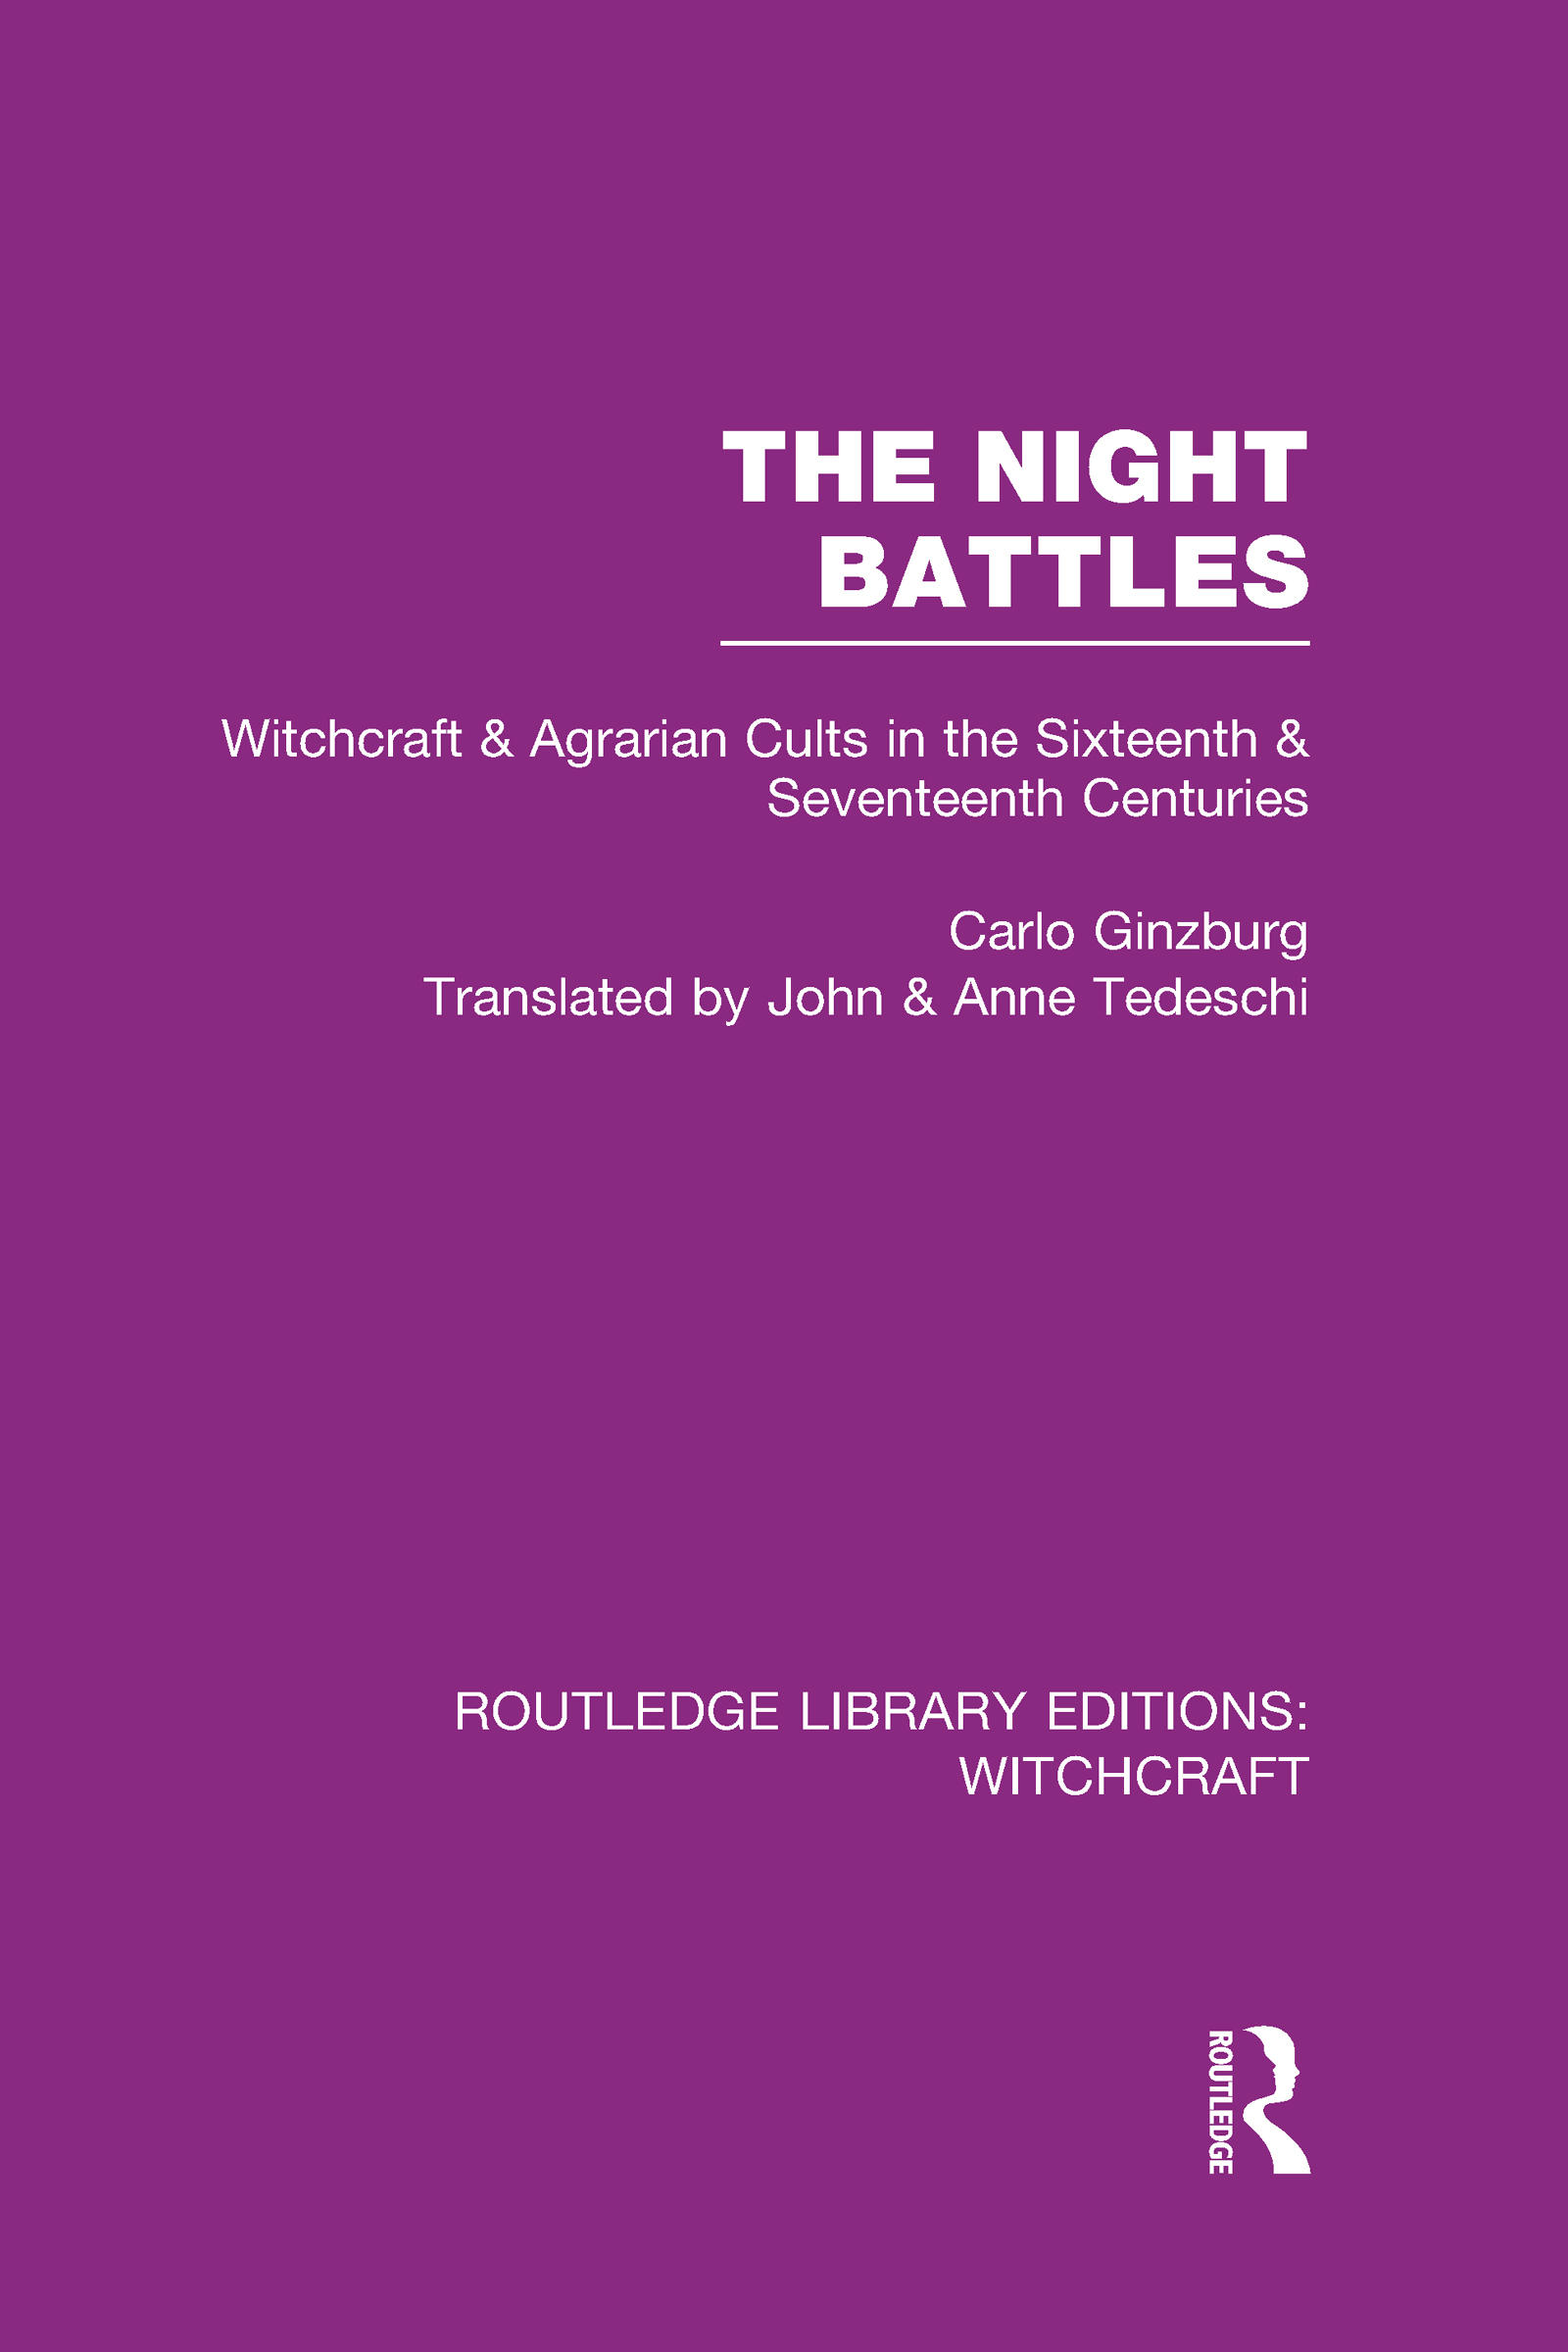 The Night Battles (RLE Witchcraft): Witchcraft and Agrarian Cults in the Sixteenth and Seventeenth Centuries (Hardback) book cover